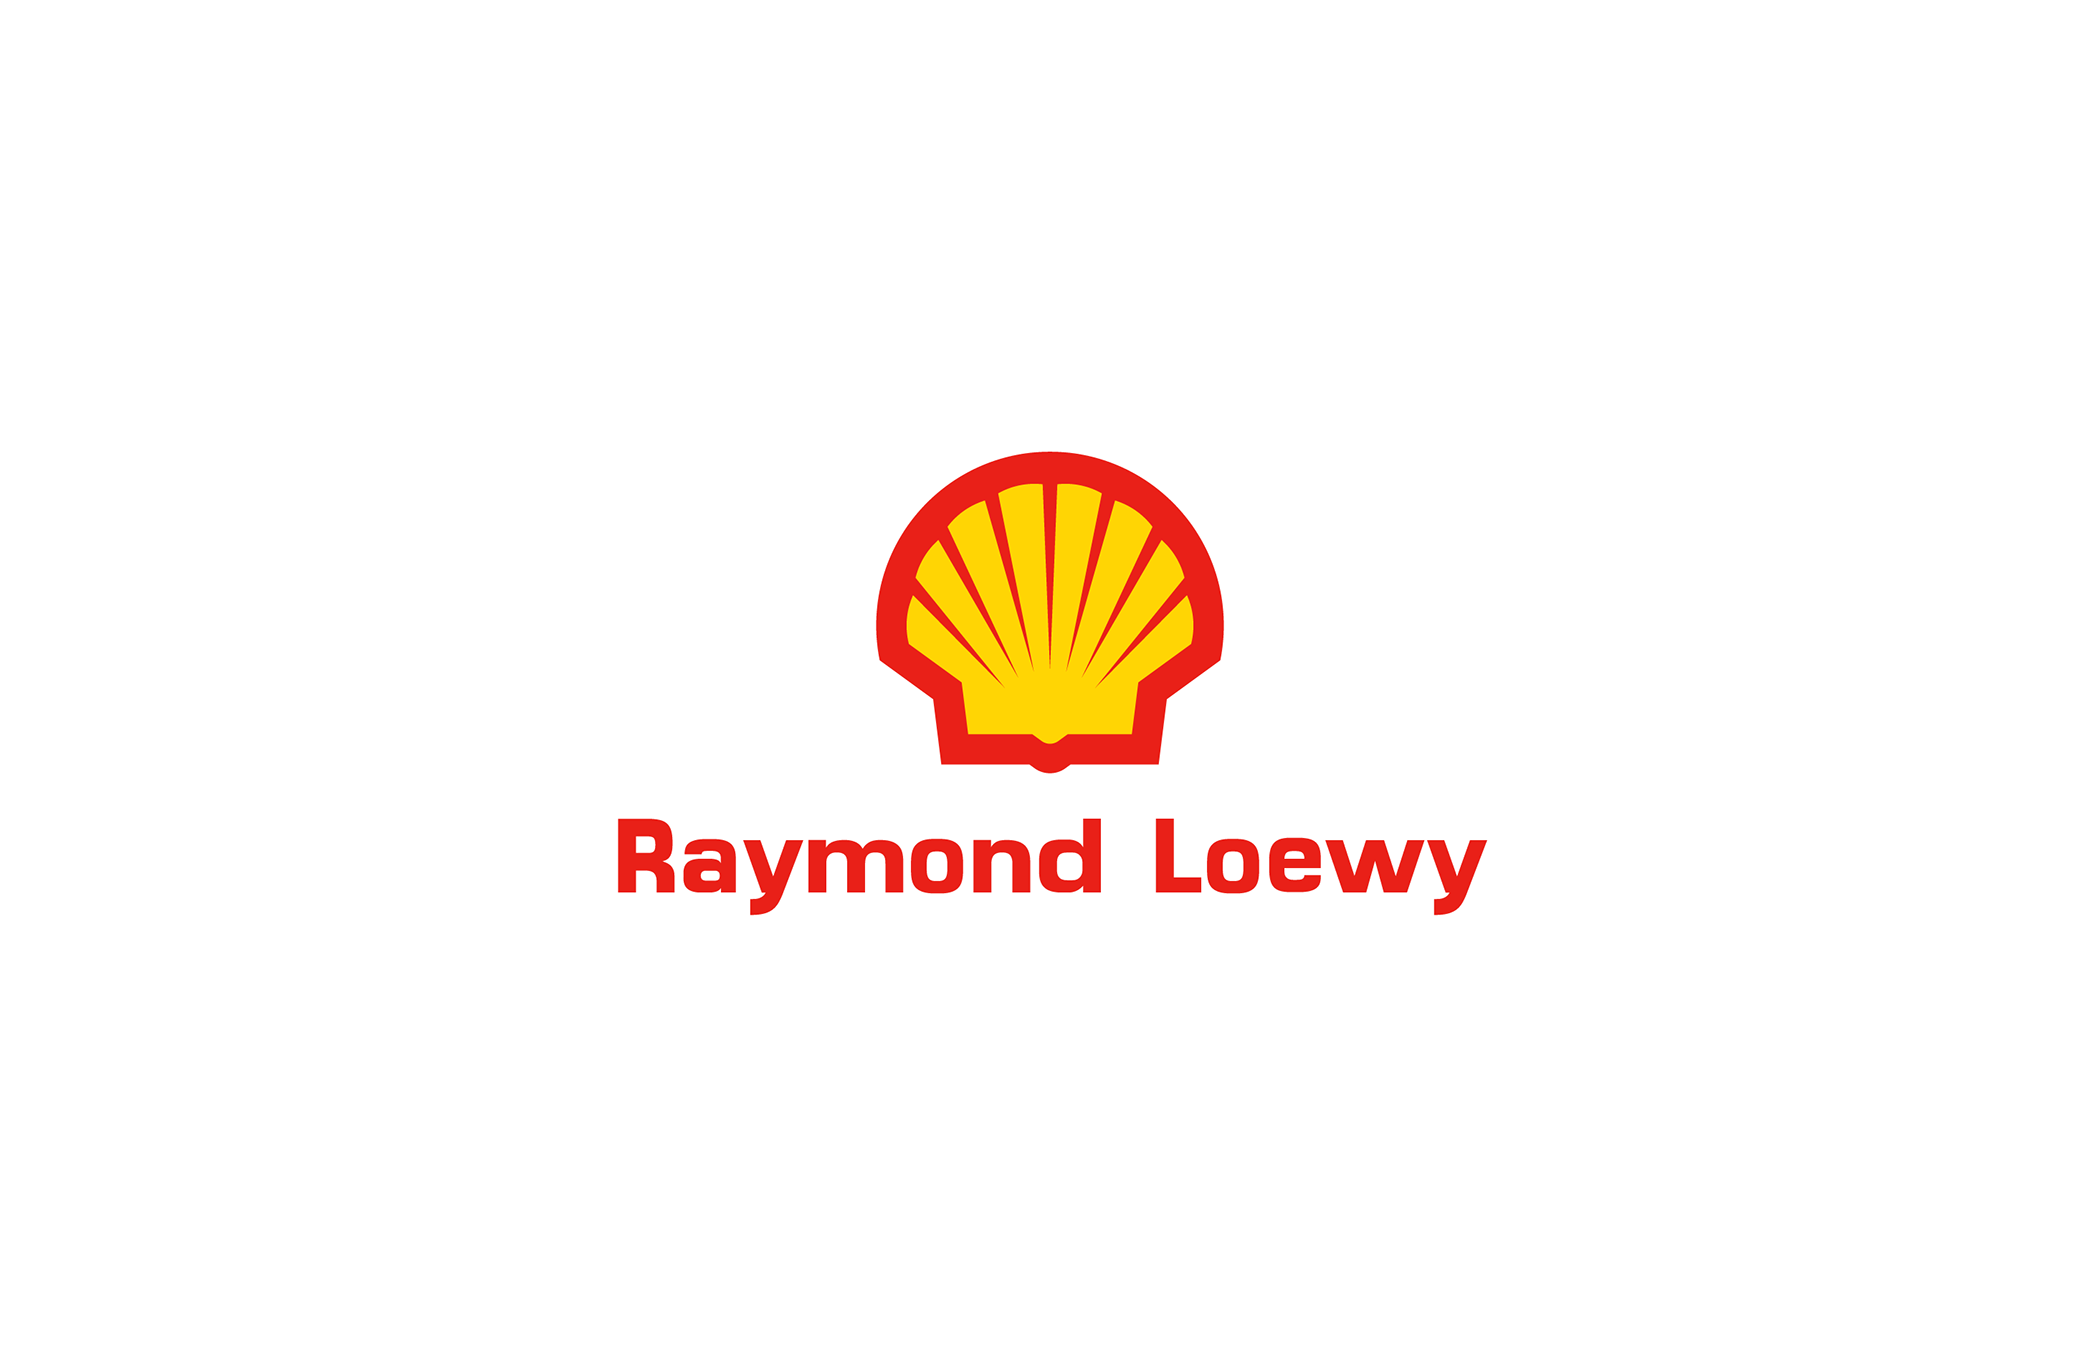 Raymond Loewy - Designer of the Shell logo